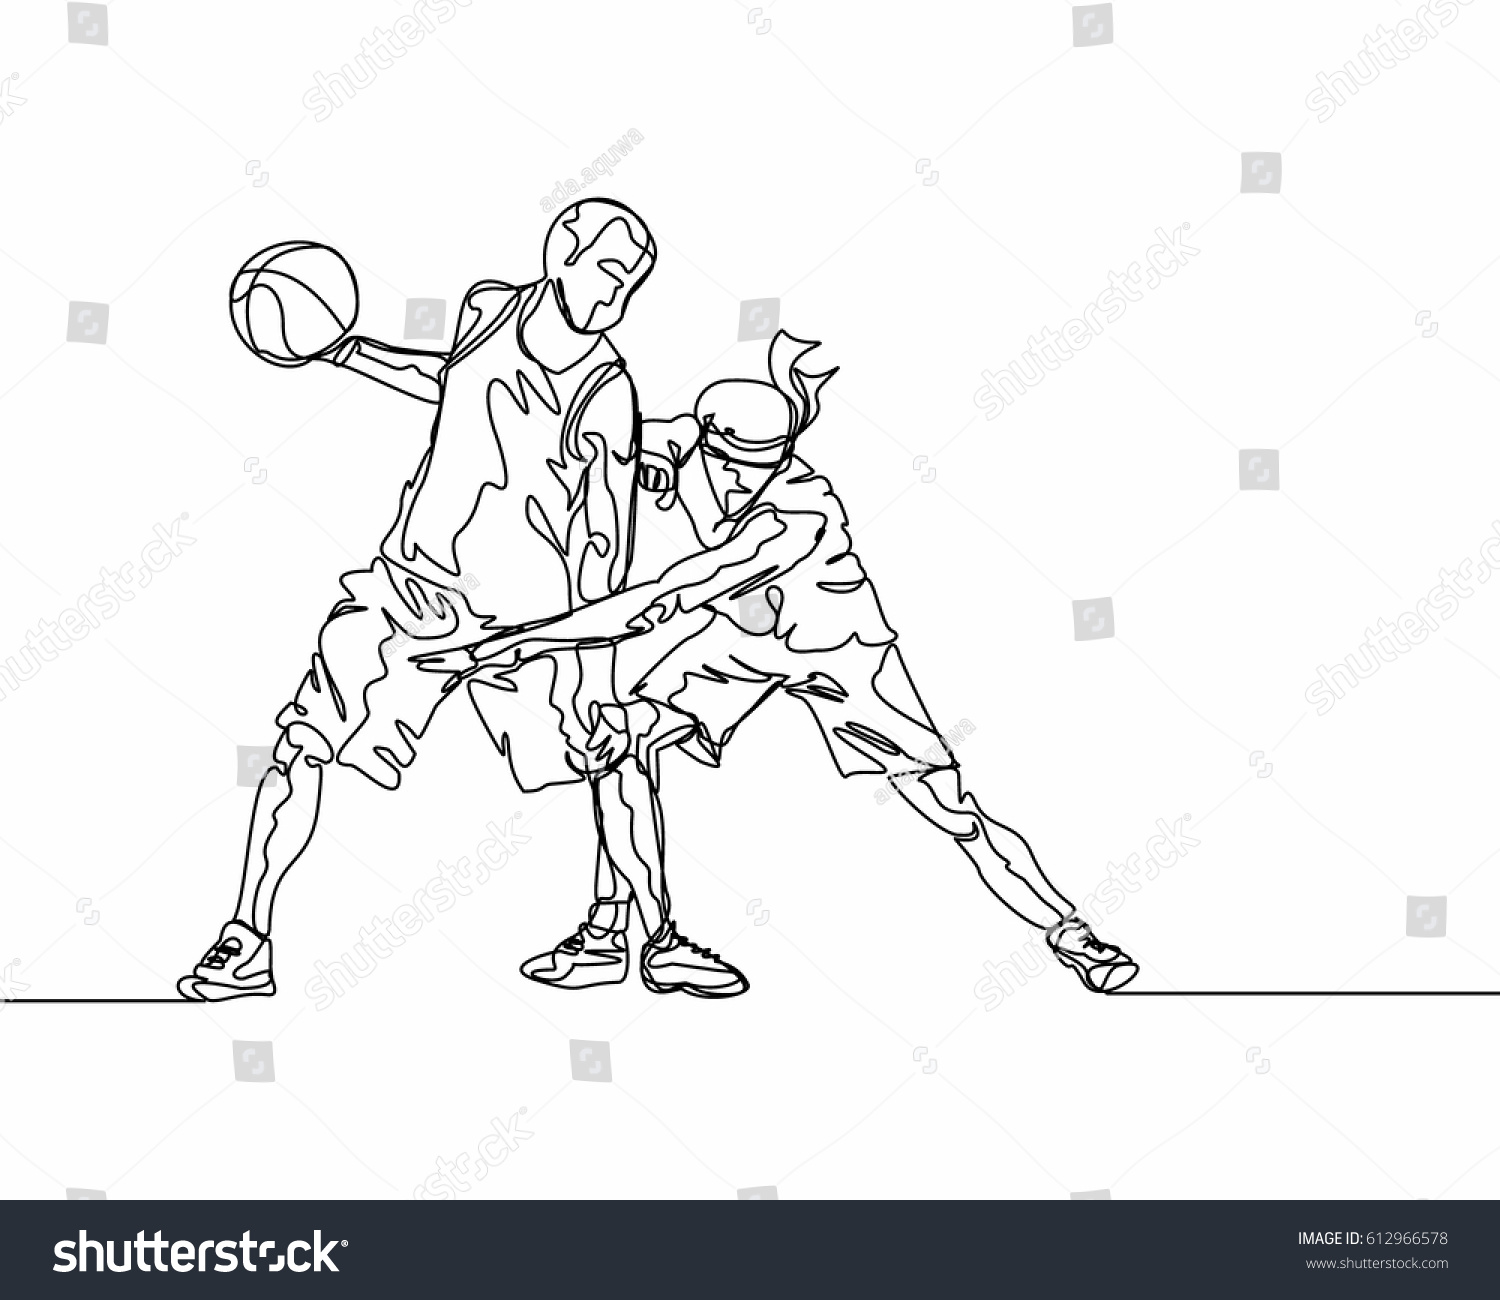 Line Drawing Basketball : Continuous line drawing basketball player stock vector